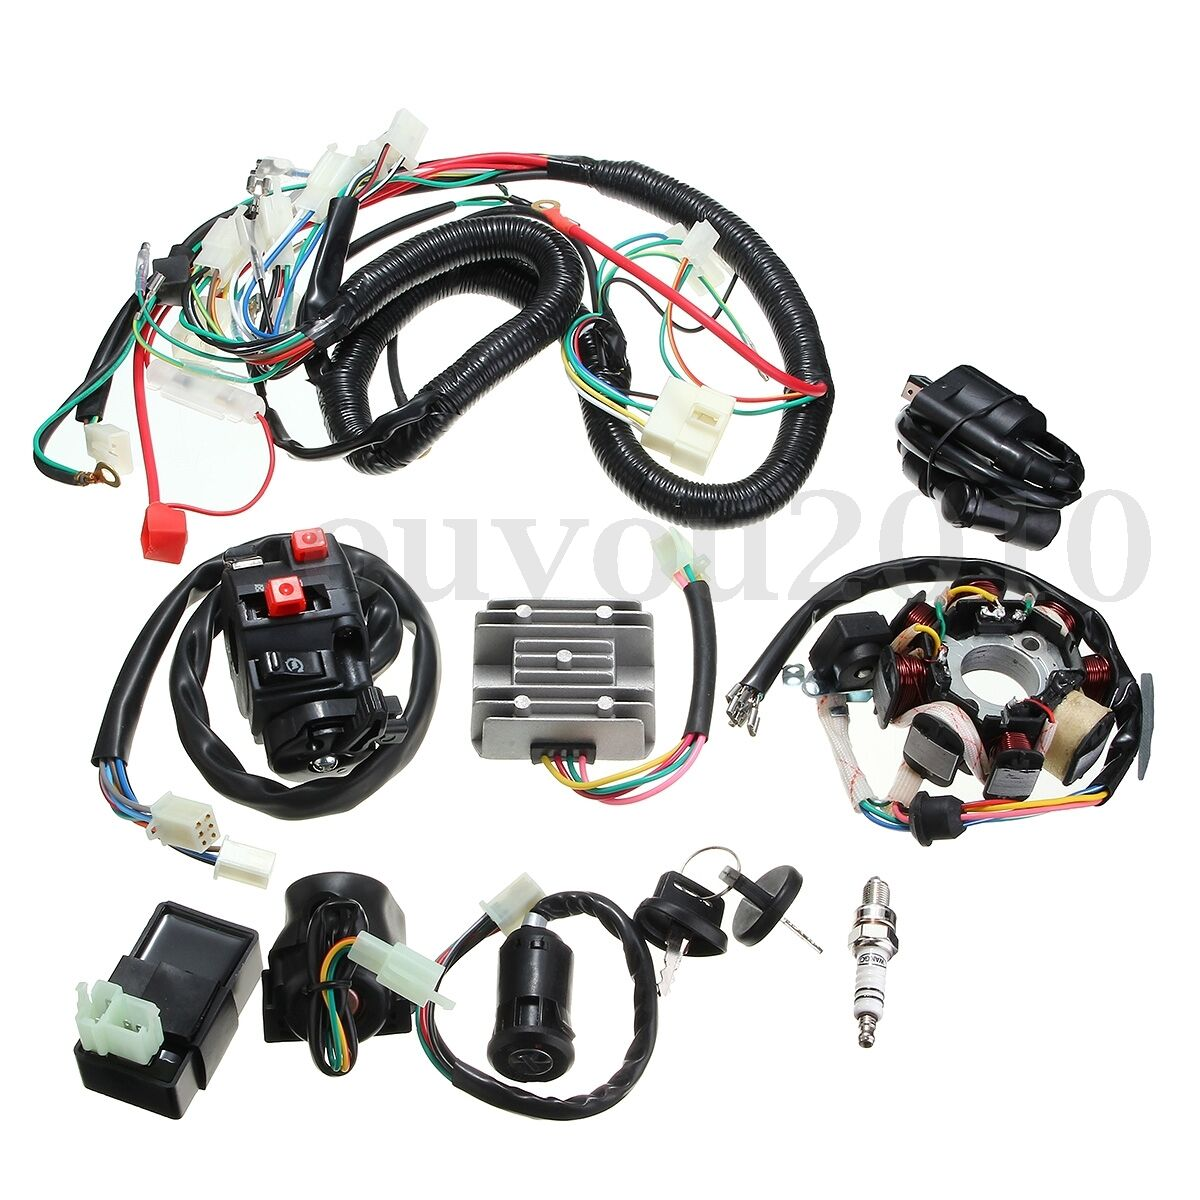 Electrics Wiring Harness Wire Loom ATV QUAD 125 150 200 250cc Stator CDI  Coil 1 of 12Only 0 available Electrics Wiring Harness Wire Loom ATV ...